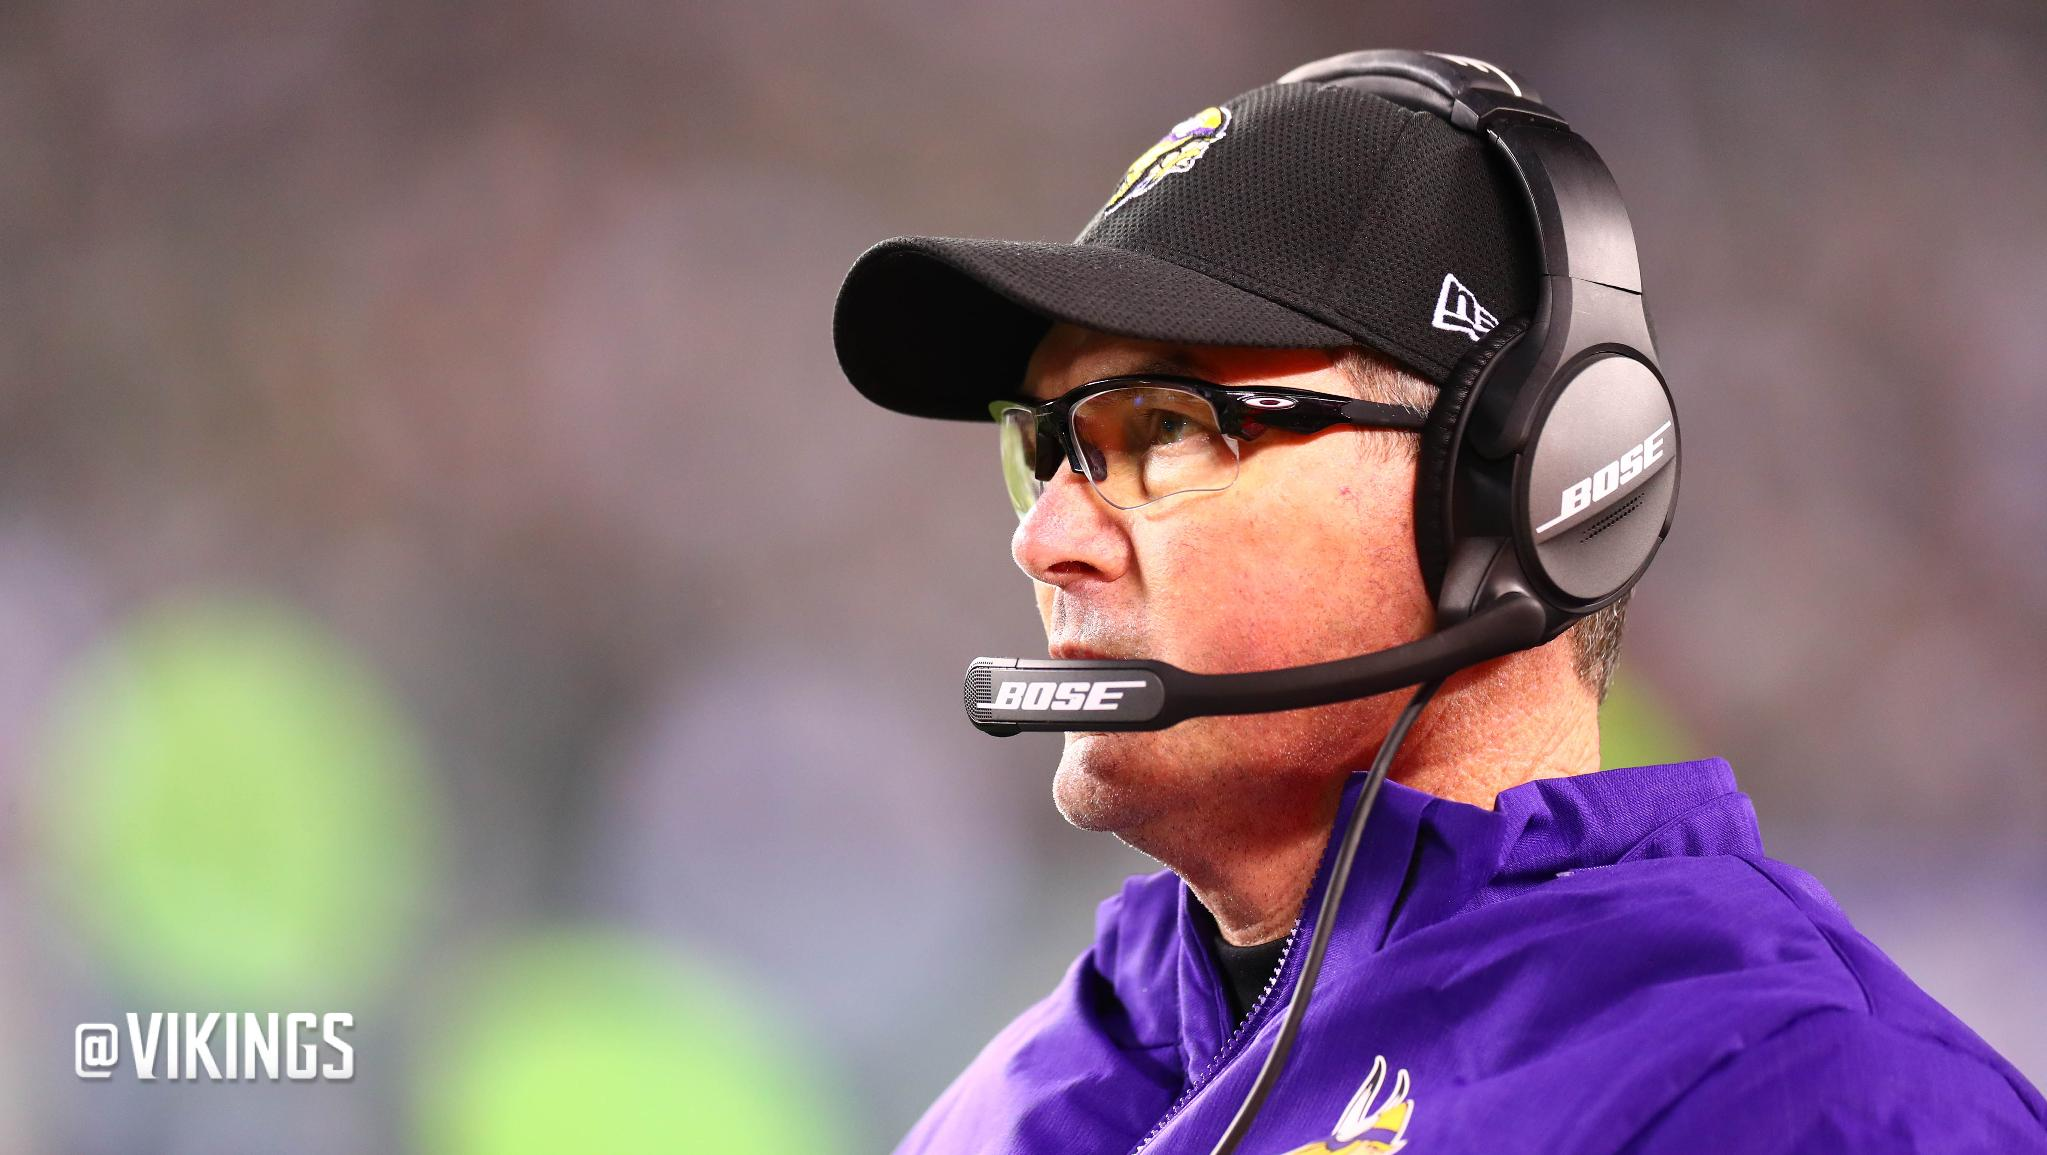 Mike Zimmer was recently ranked #8 in @rotoworld's list of top NFL coaches.  ��: https://t.co/3Peg1lkKFm https://t.co/djmesgQL4c